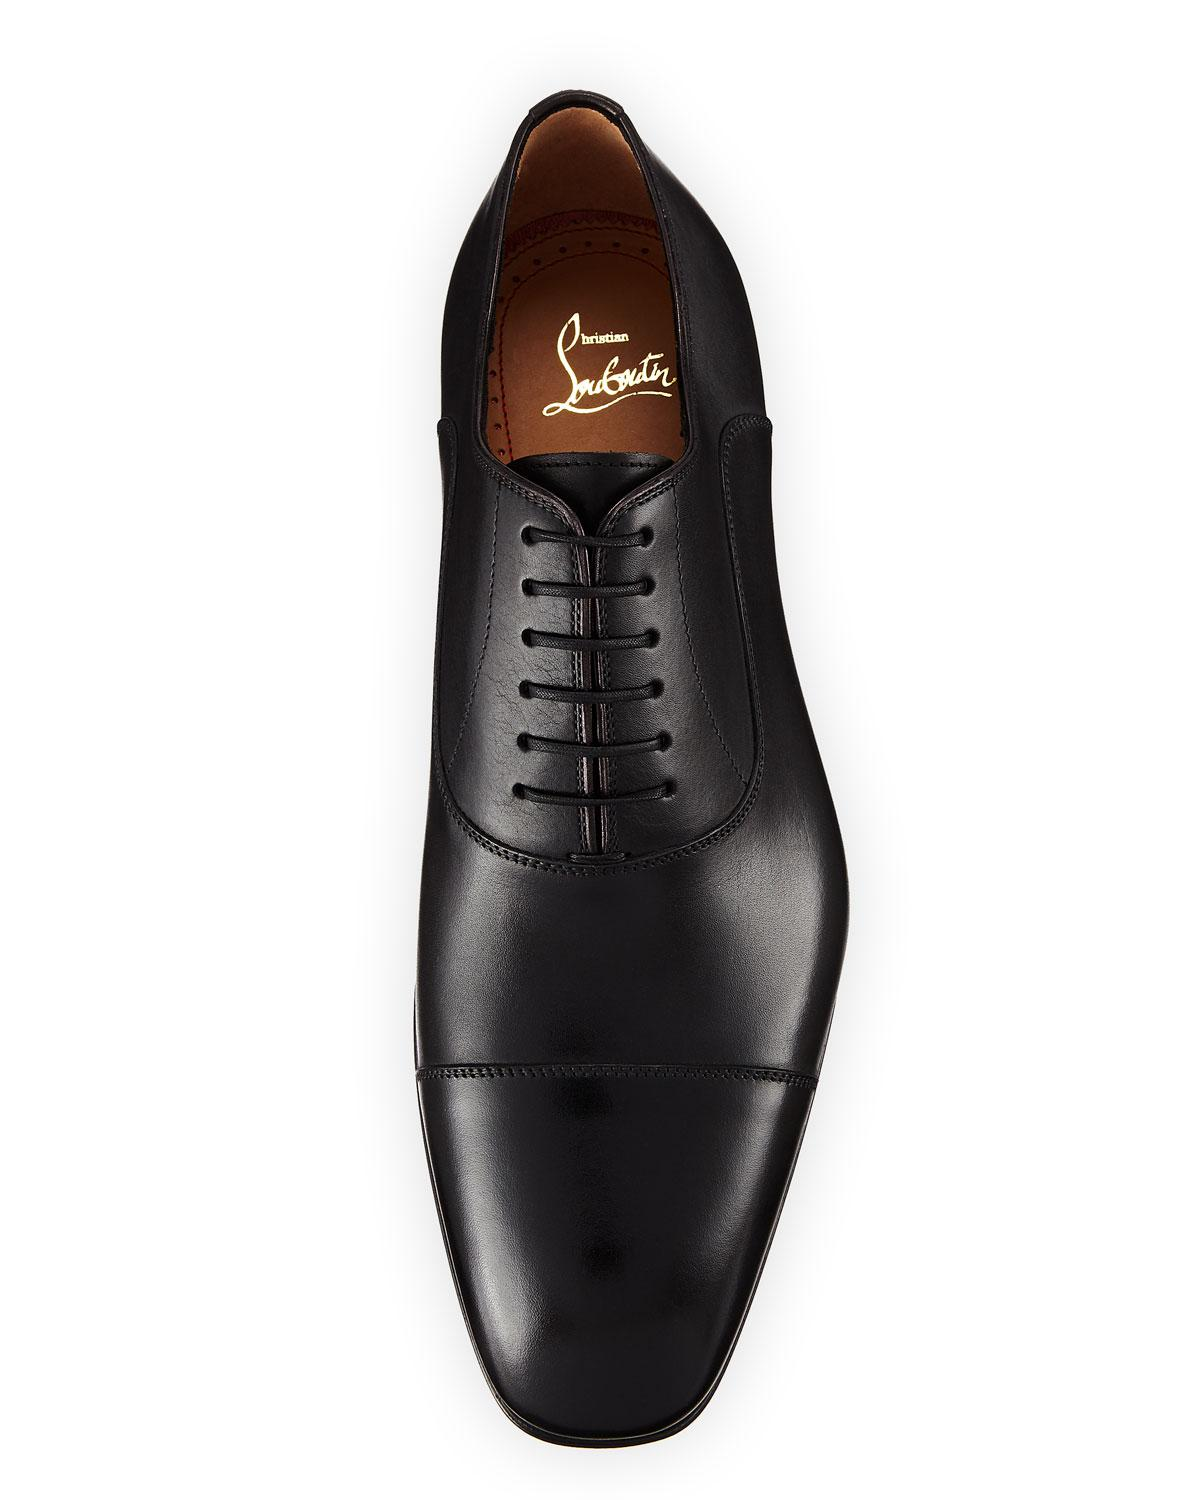 0c390cbd429 Lyst - Christian Louboutin Greggo Men s Lace-up Leather Dress Shoe in Black  for Men